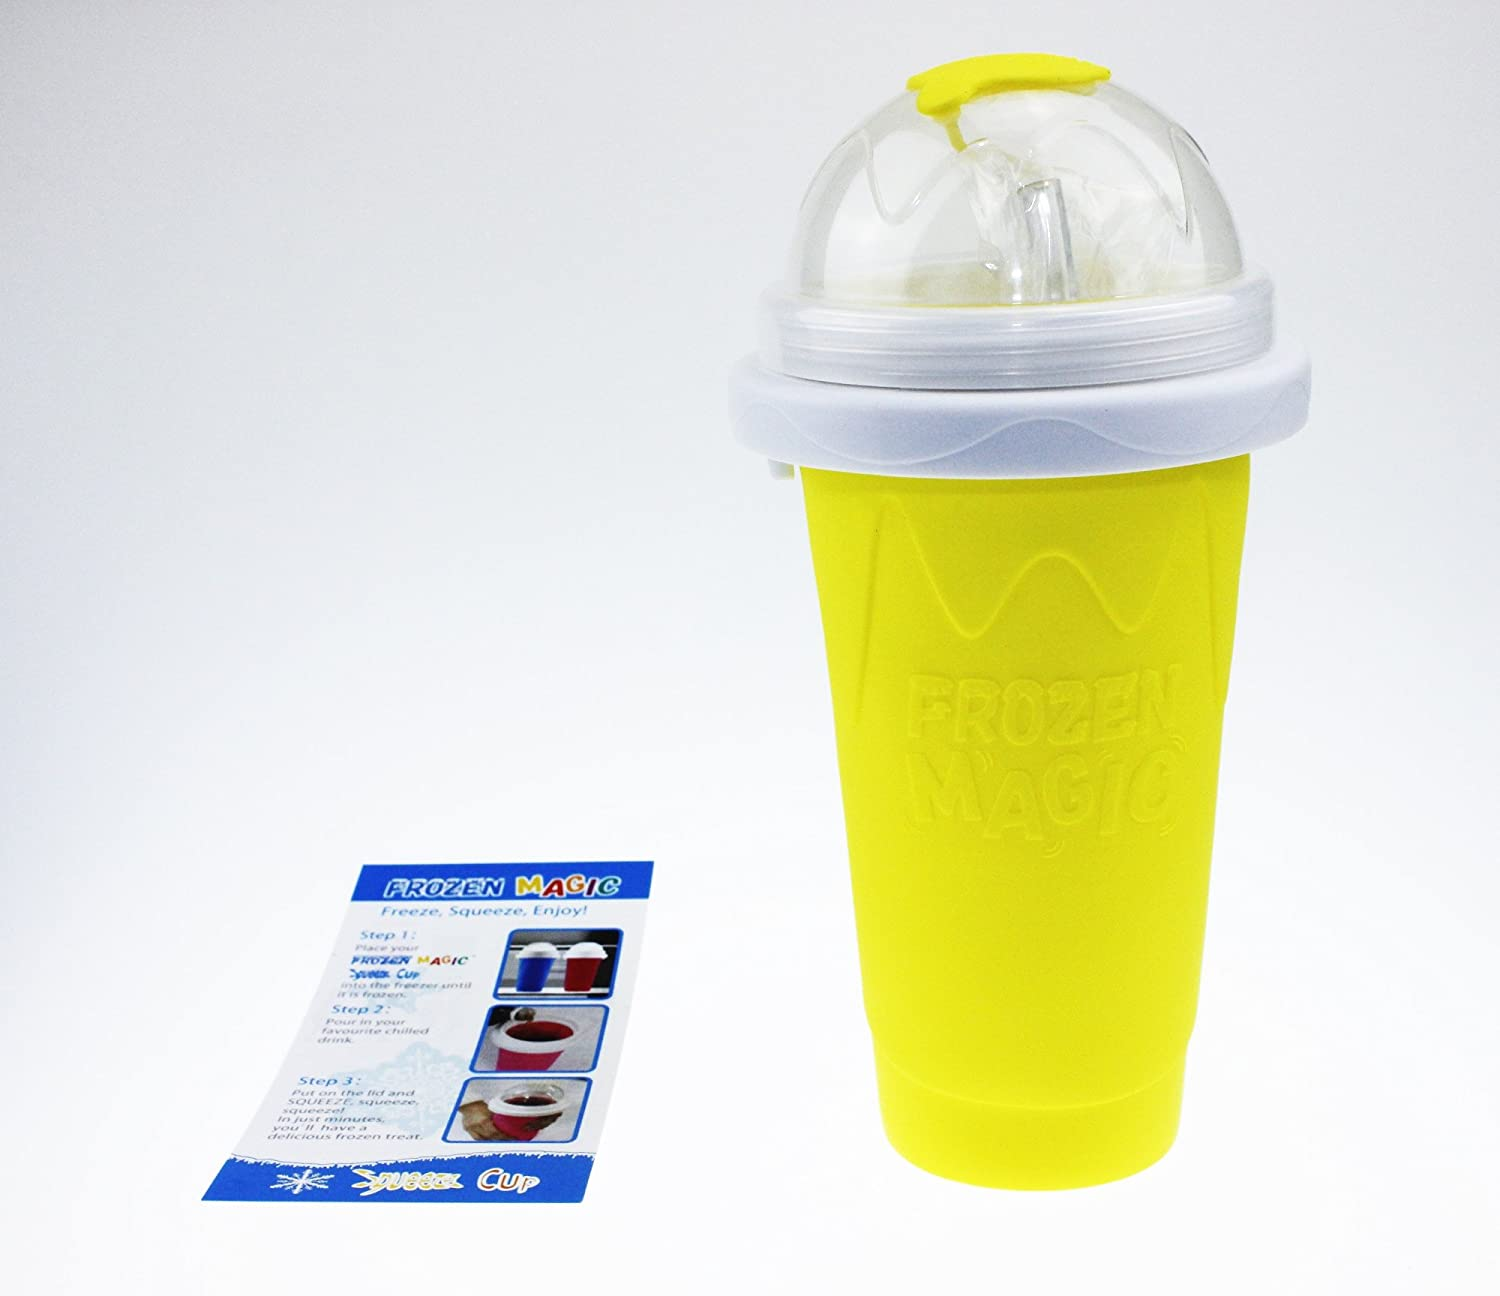 Squeeze Cup Slushy Maker - Yellow [version:x8] by DELIAWINTERFEL